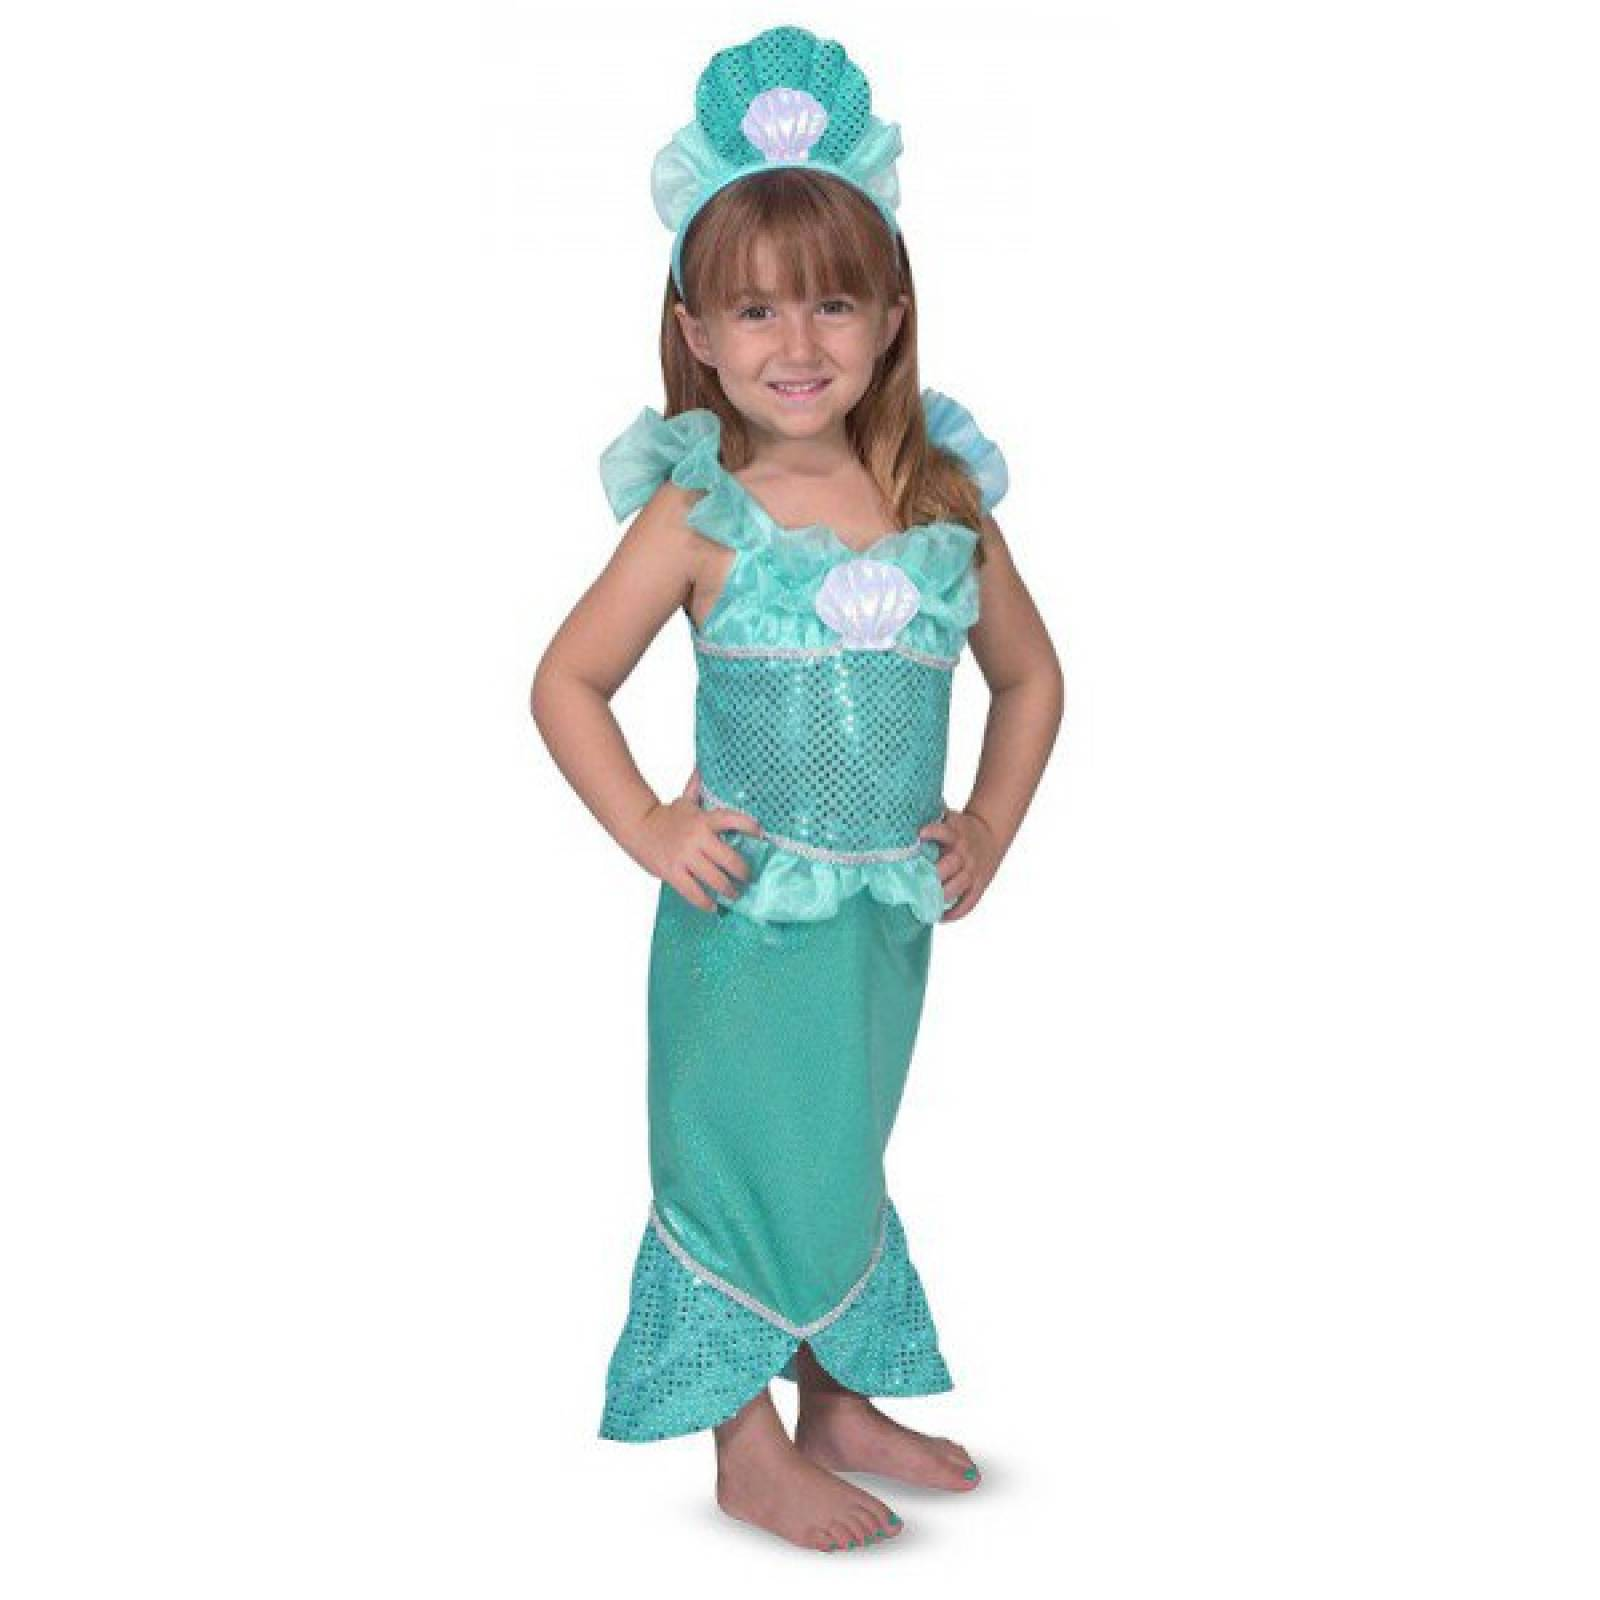 Fancy Dress Role Play Costume Set - Mermaid